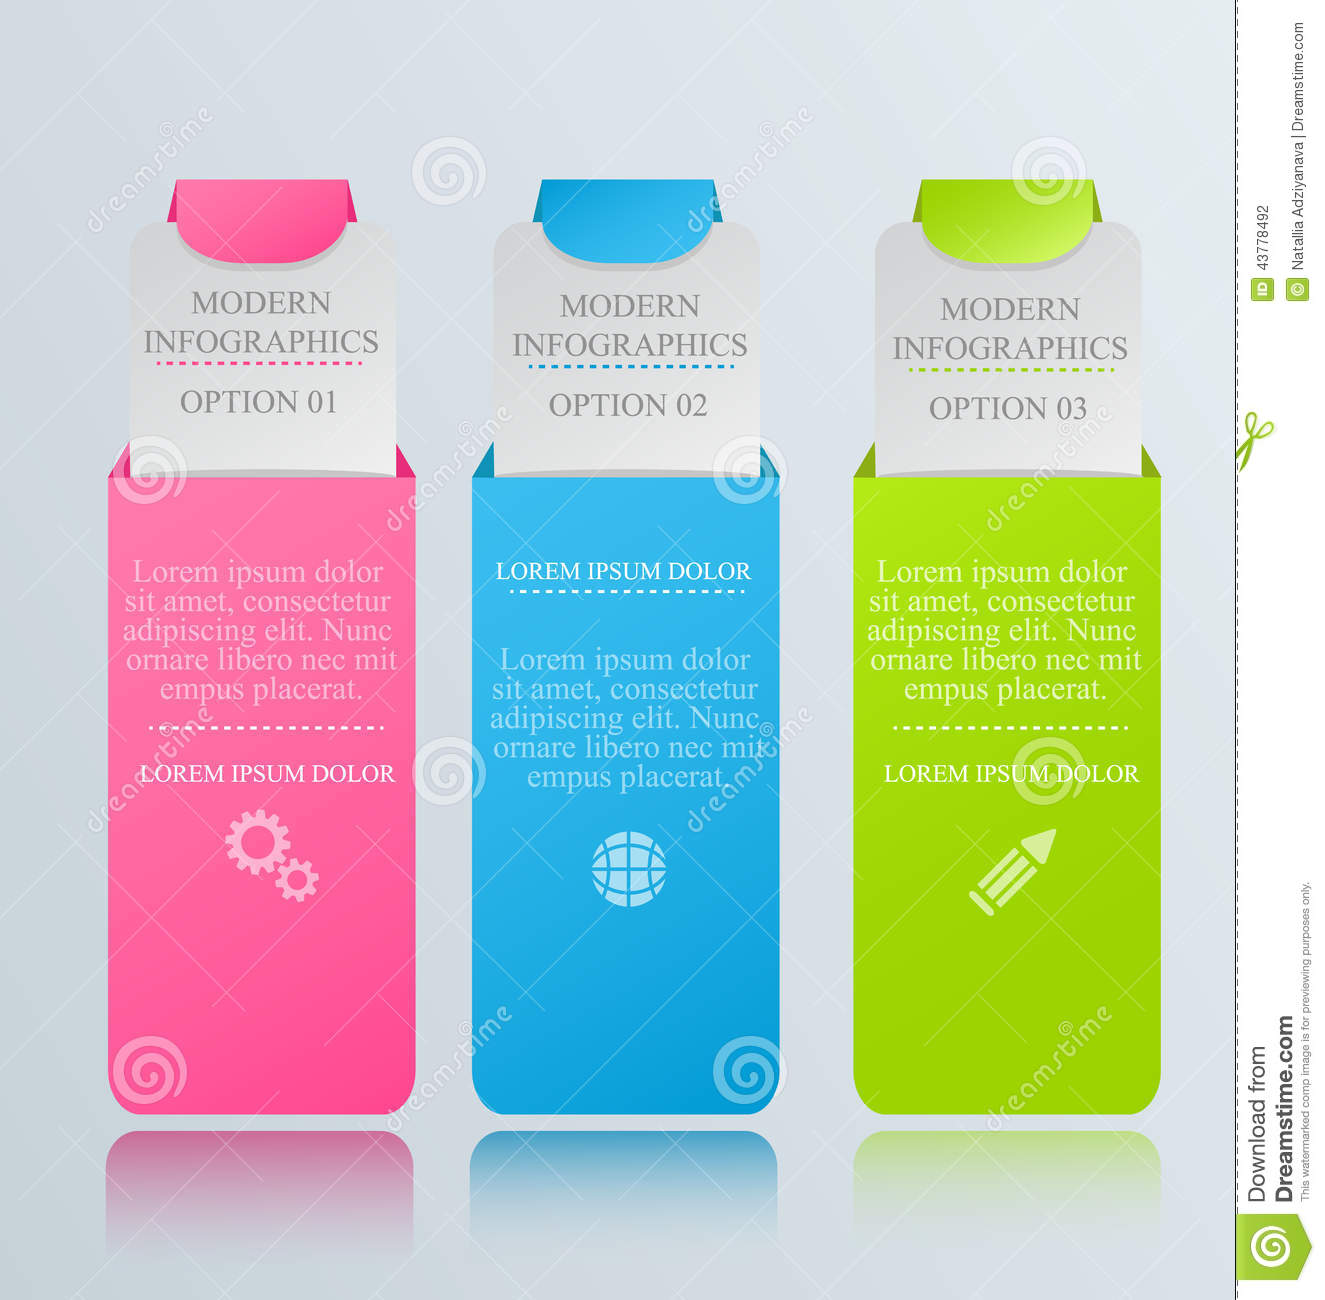 modern inforgraphic template can be used for banners website designs templates